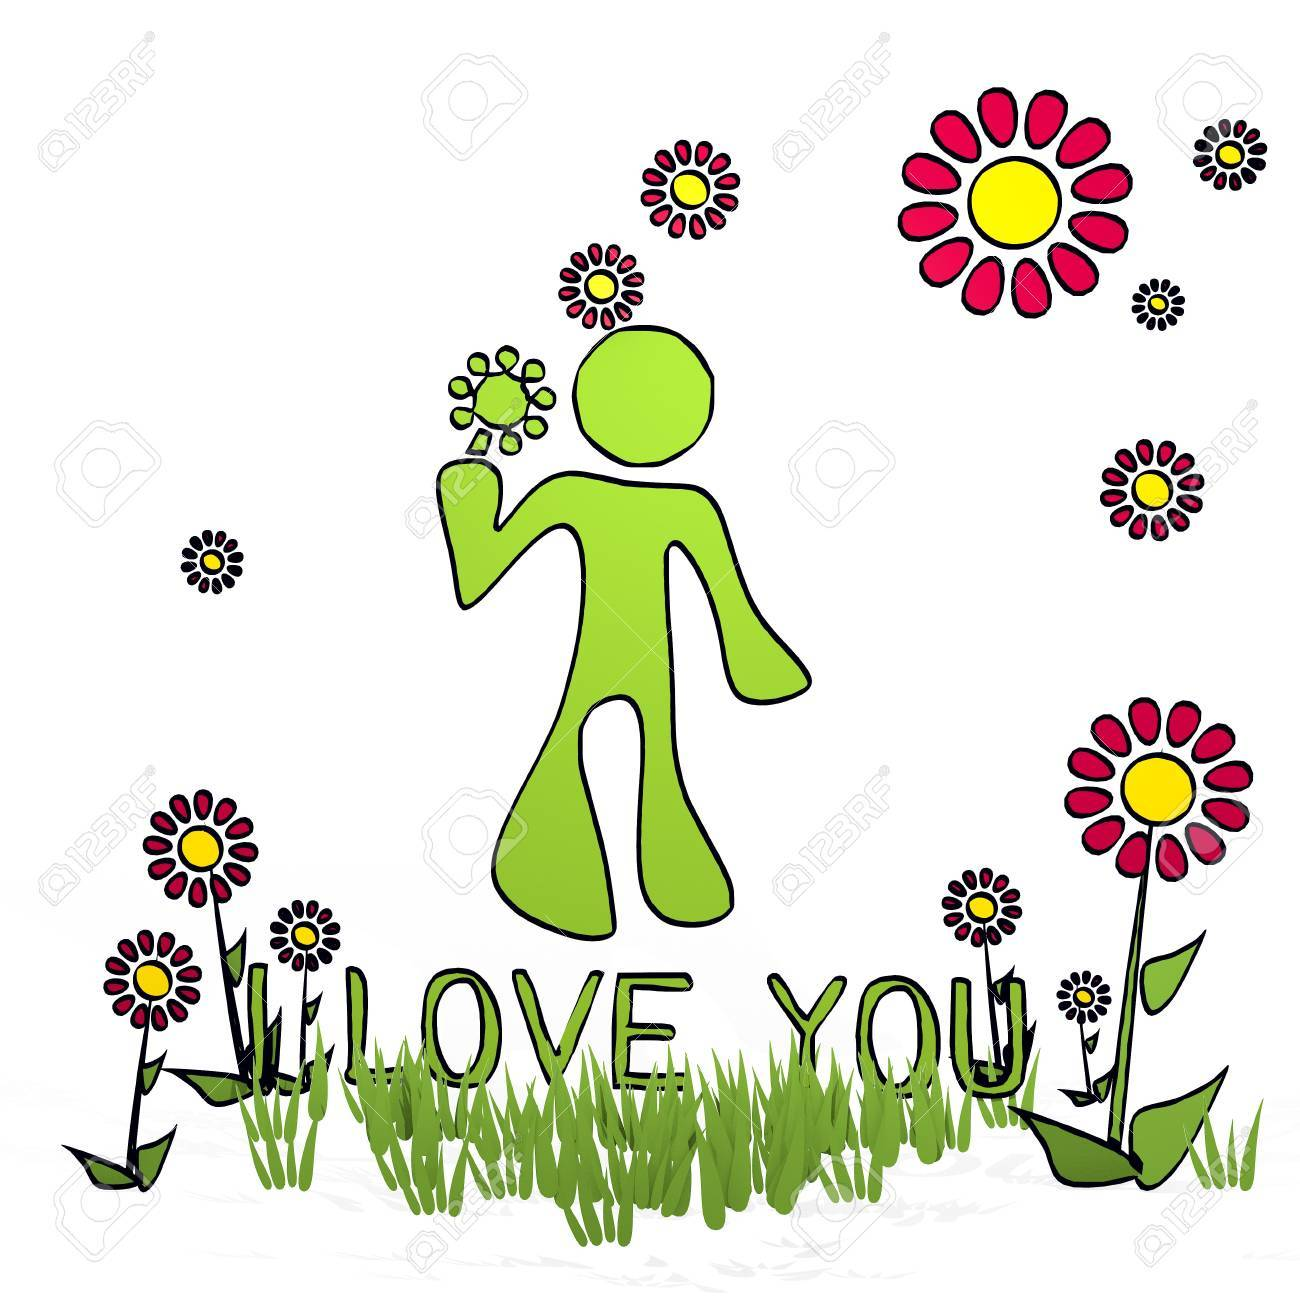 Spring Flower Hand Drawn Sketch Of I Love You With Childish Flowers On White Background Stock